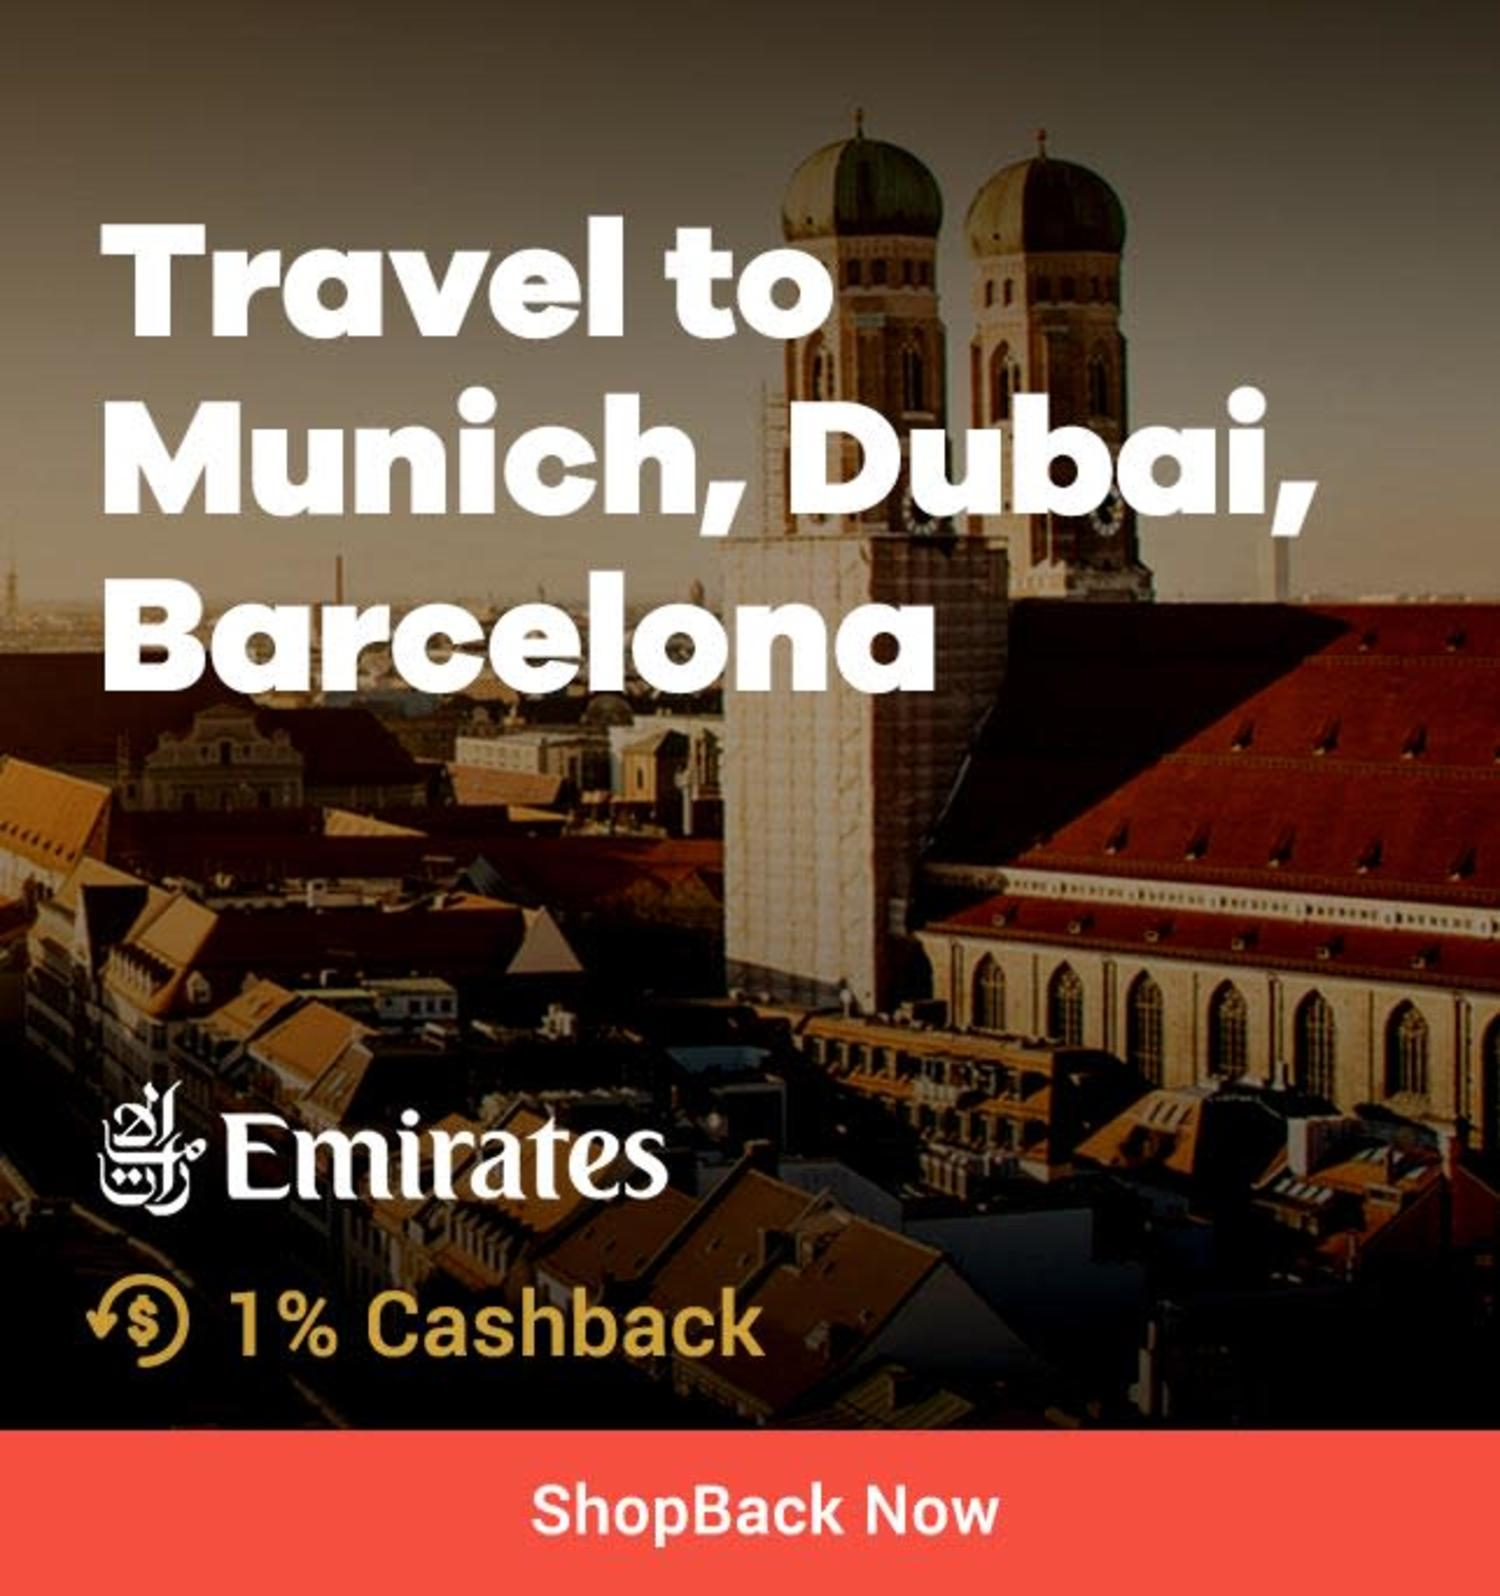 Emirates Fly to Munich, Germany, Barcelona + 1% Cashback